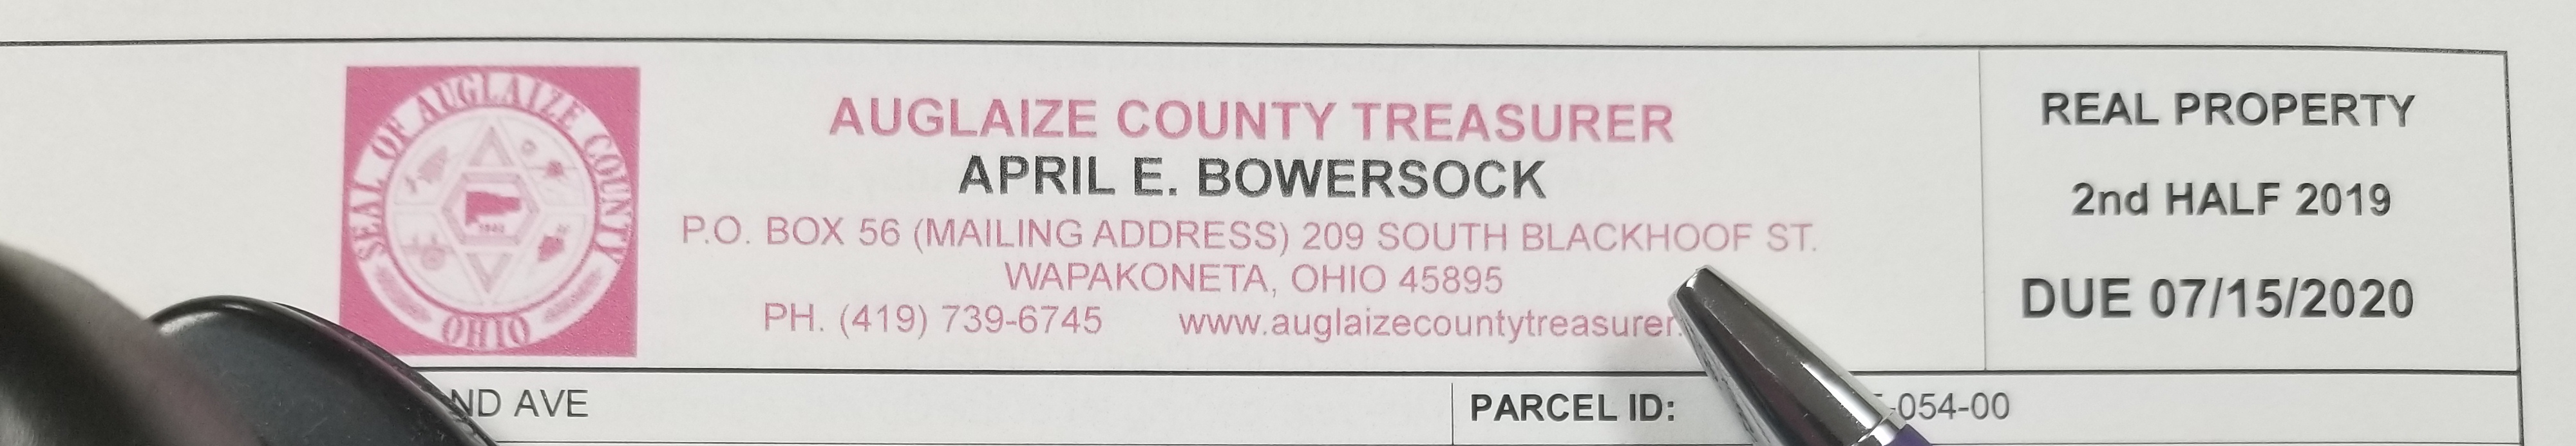 Auglaize County Treasurer